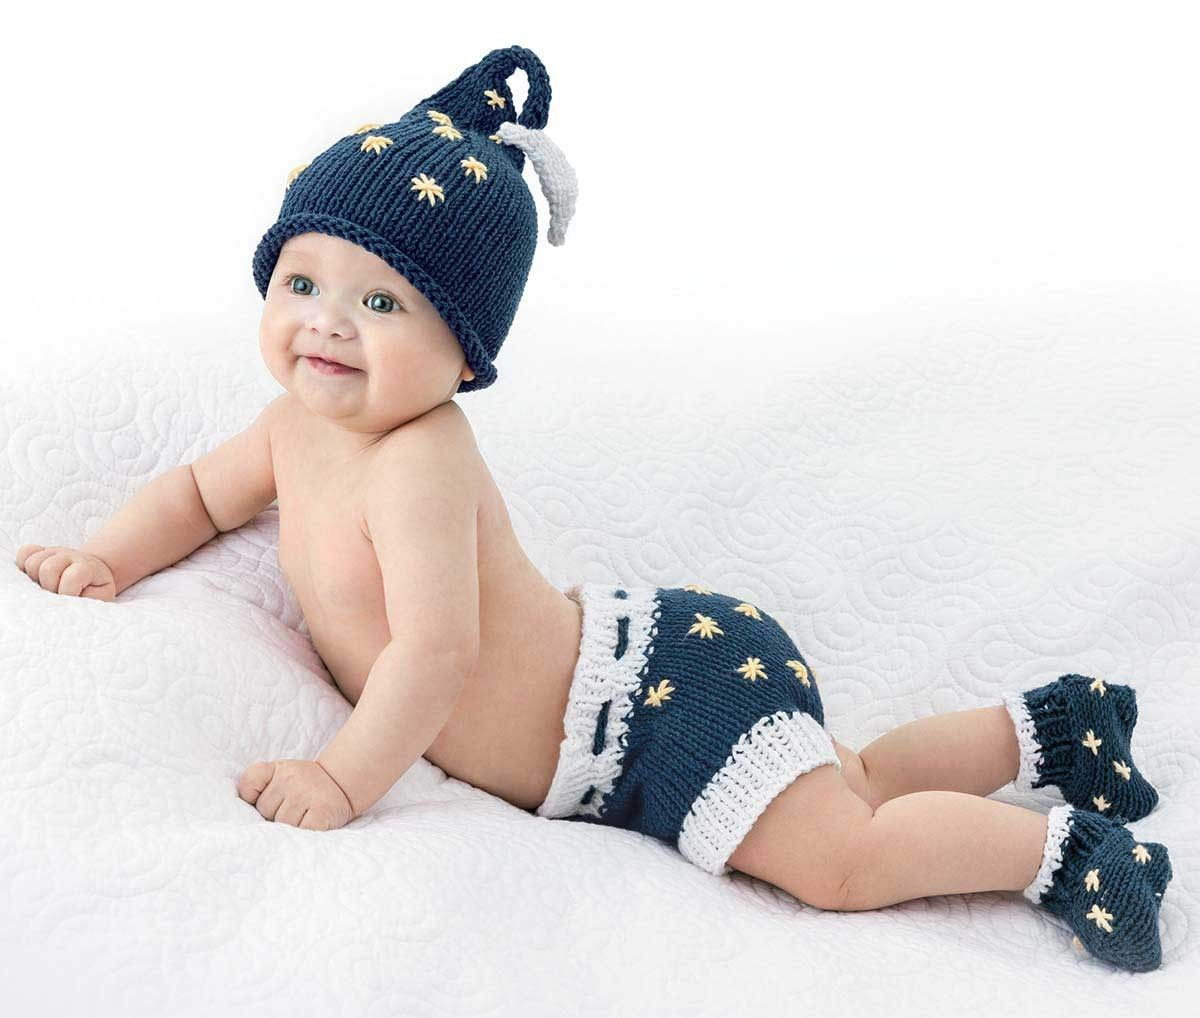 Diaper cover sets work socks bumble bees and knitting patterns diaper cover sets work socksknitting patterns bankloansurffo Gallery